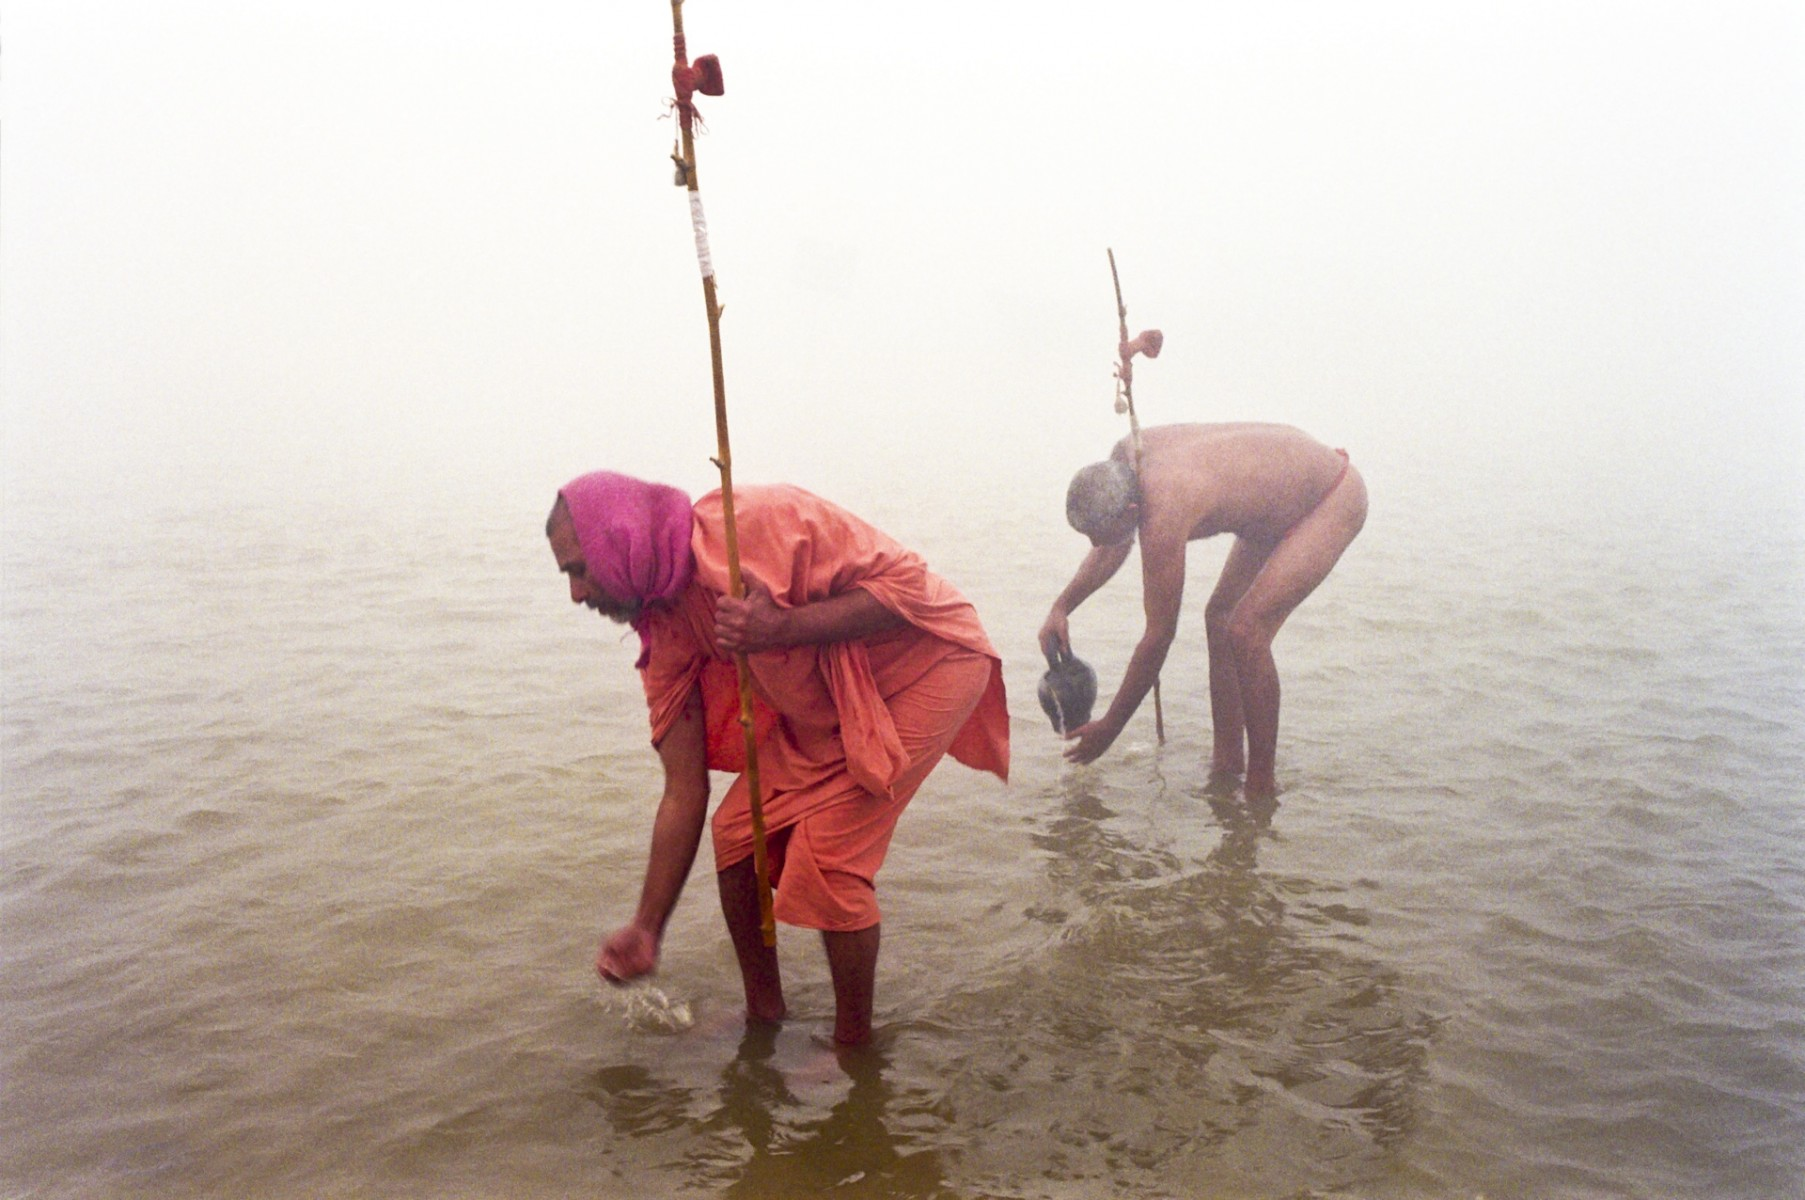 Monks, Kumbh Mela, Allahabad